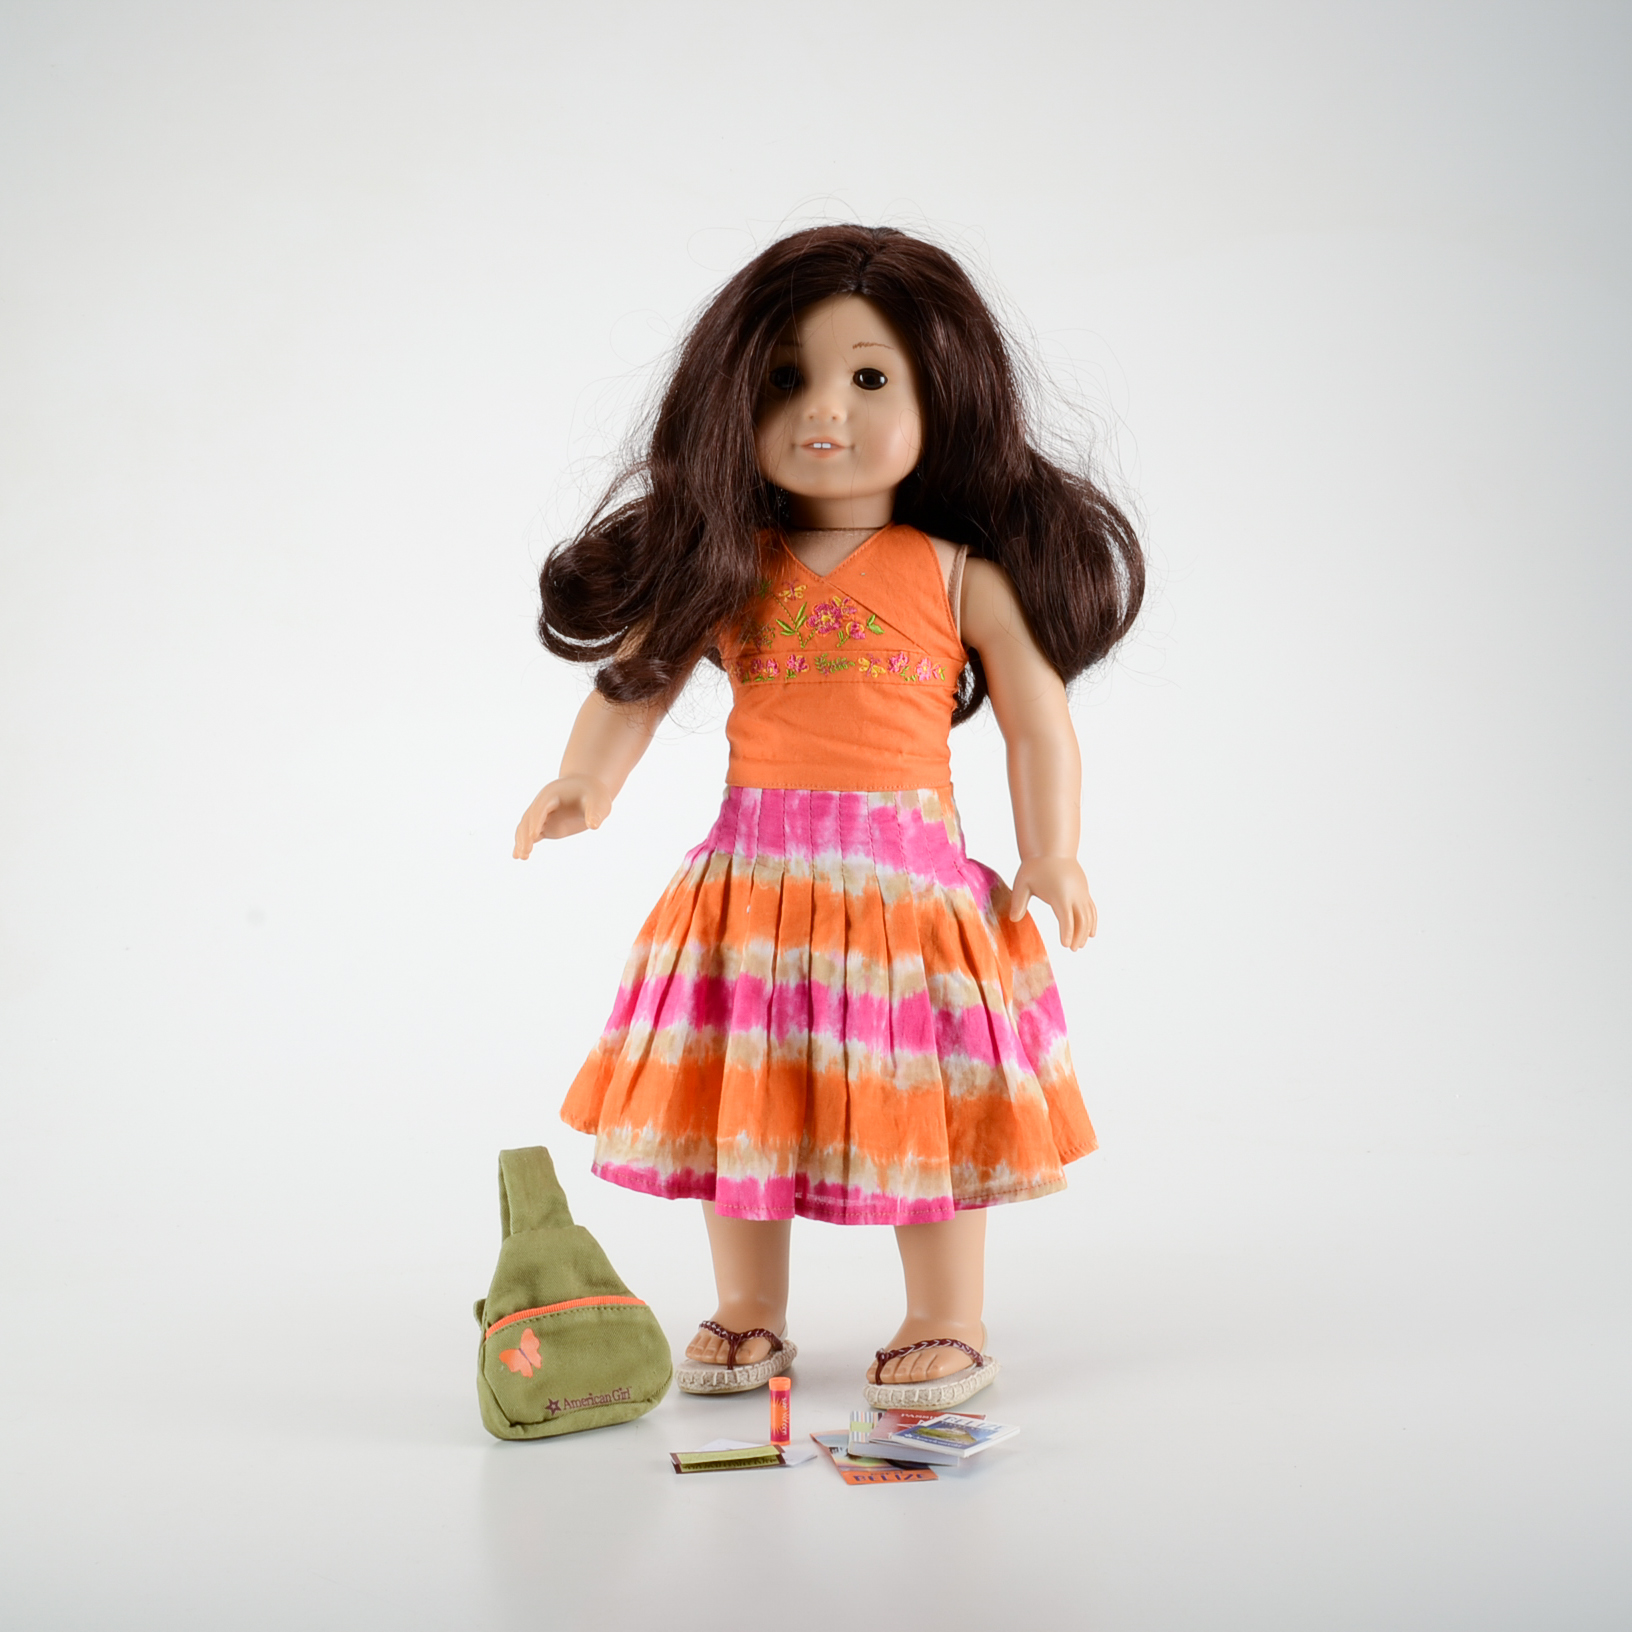 american girl doll girl of the year 2006 jess mcconnell